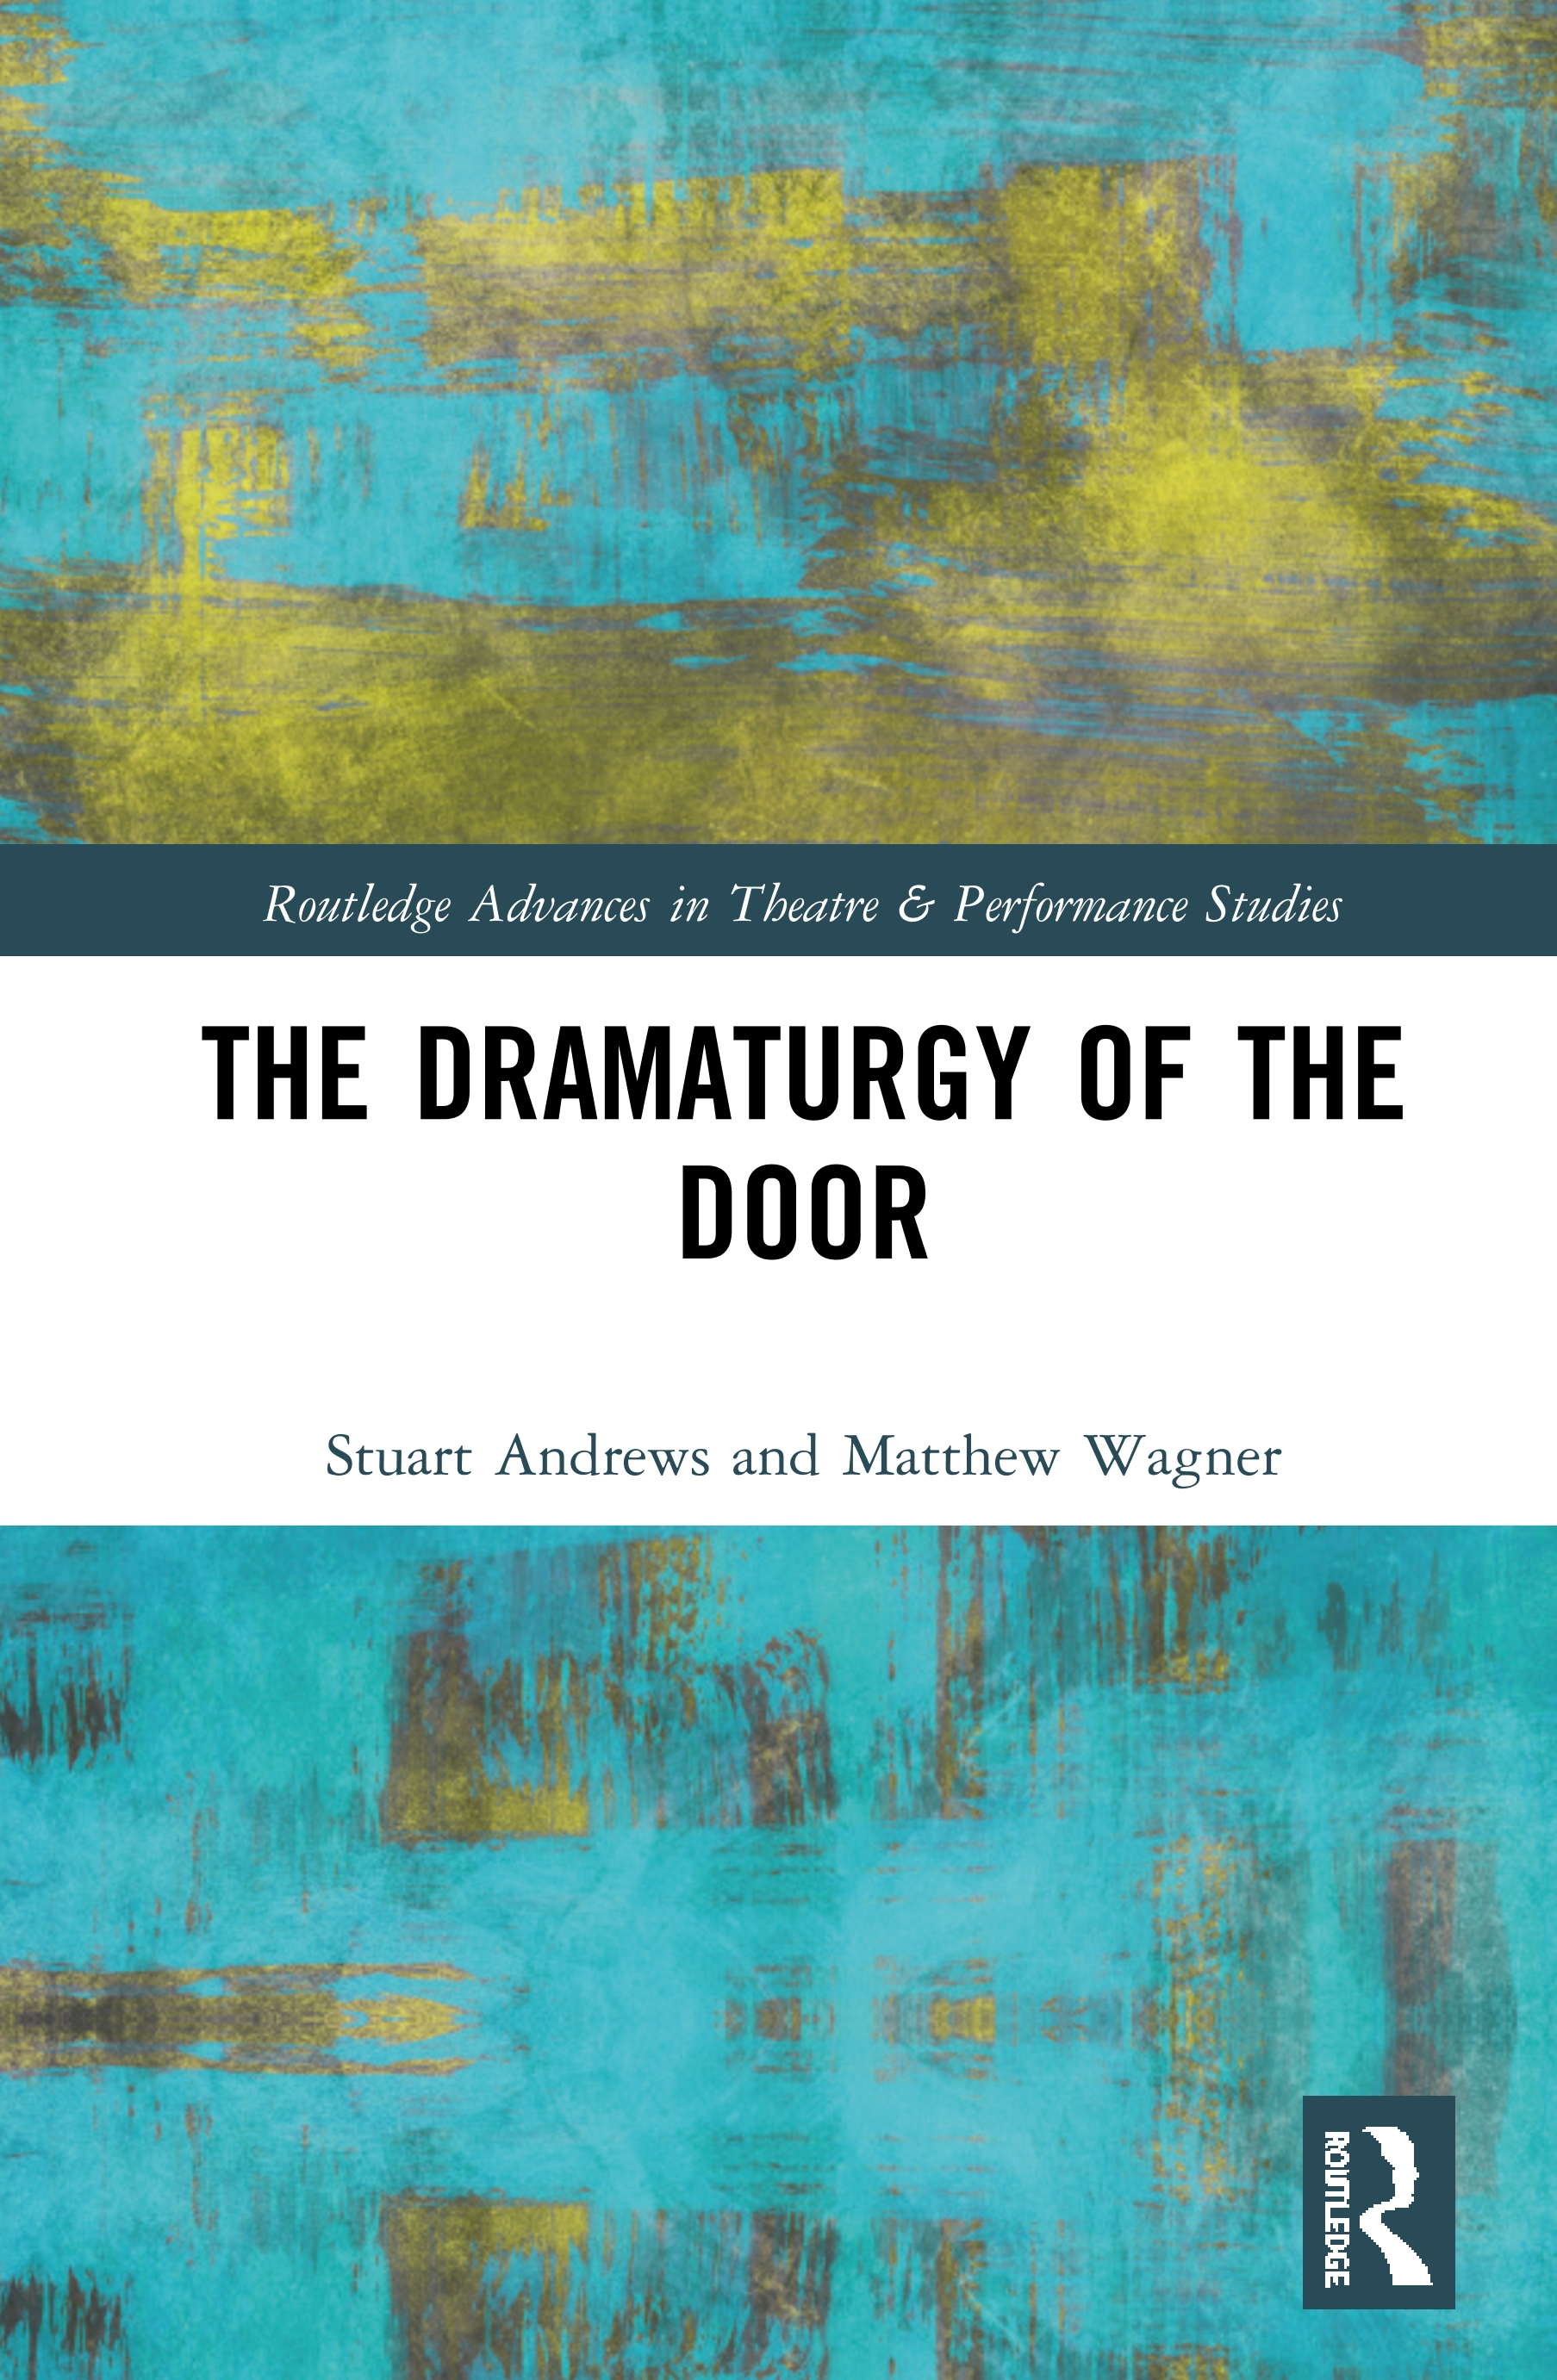 The Dramaturgy of the Door book cover